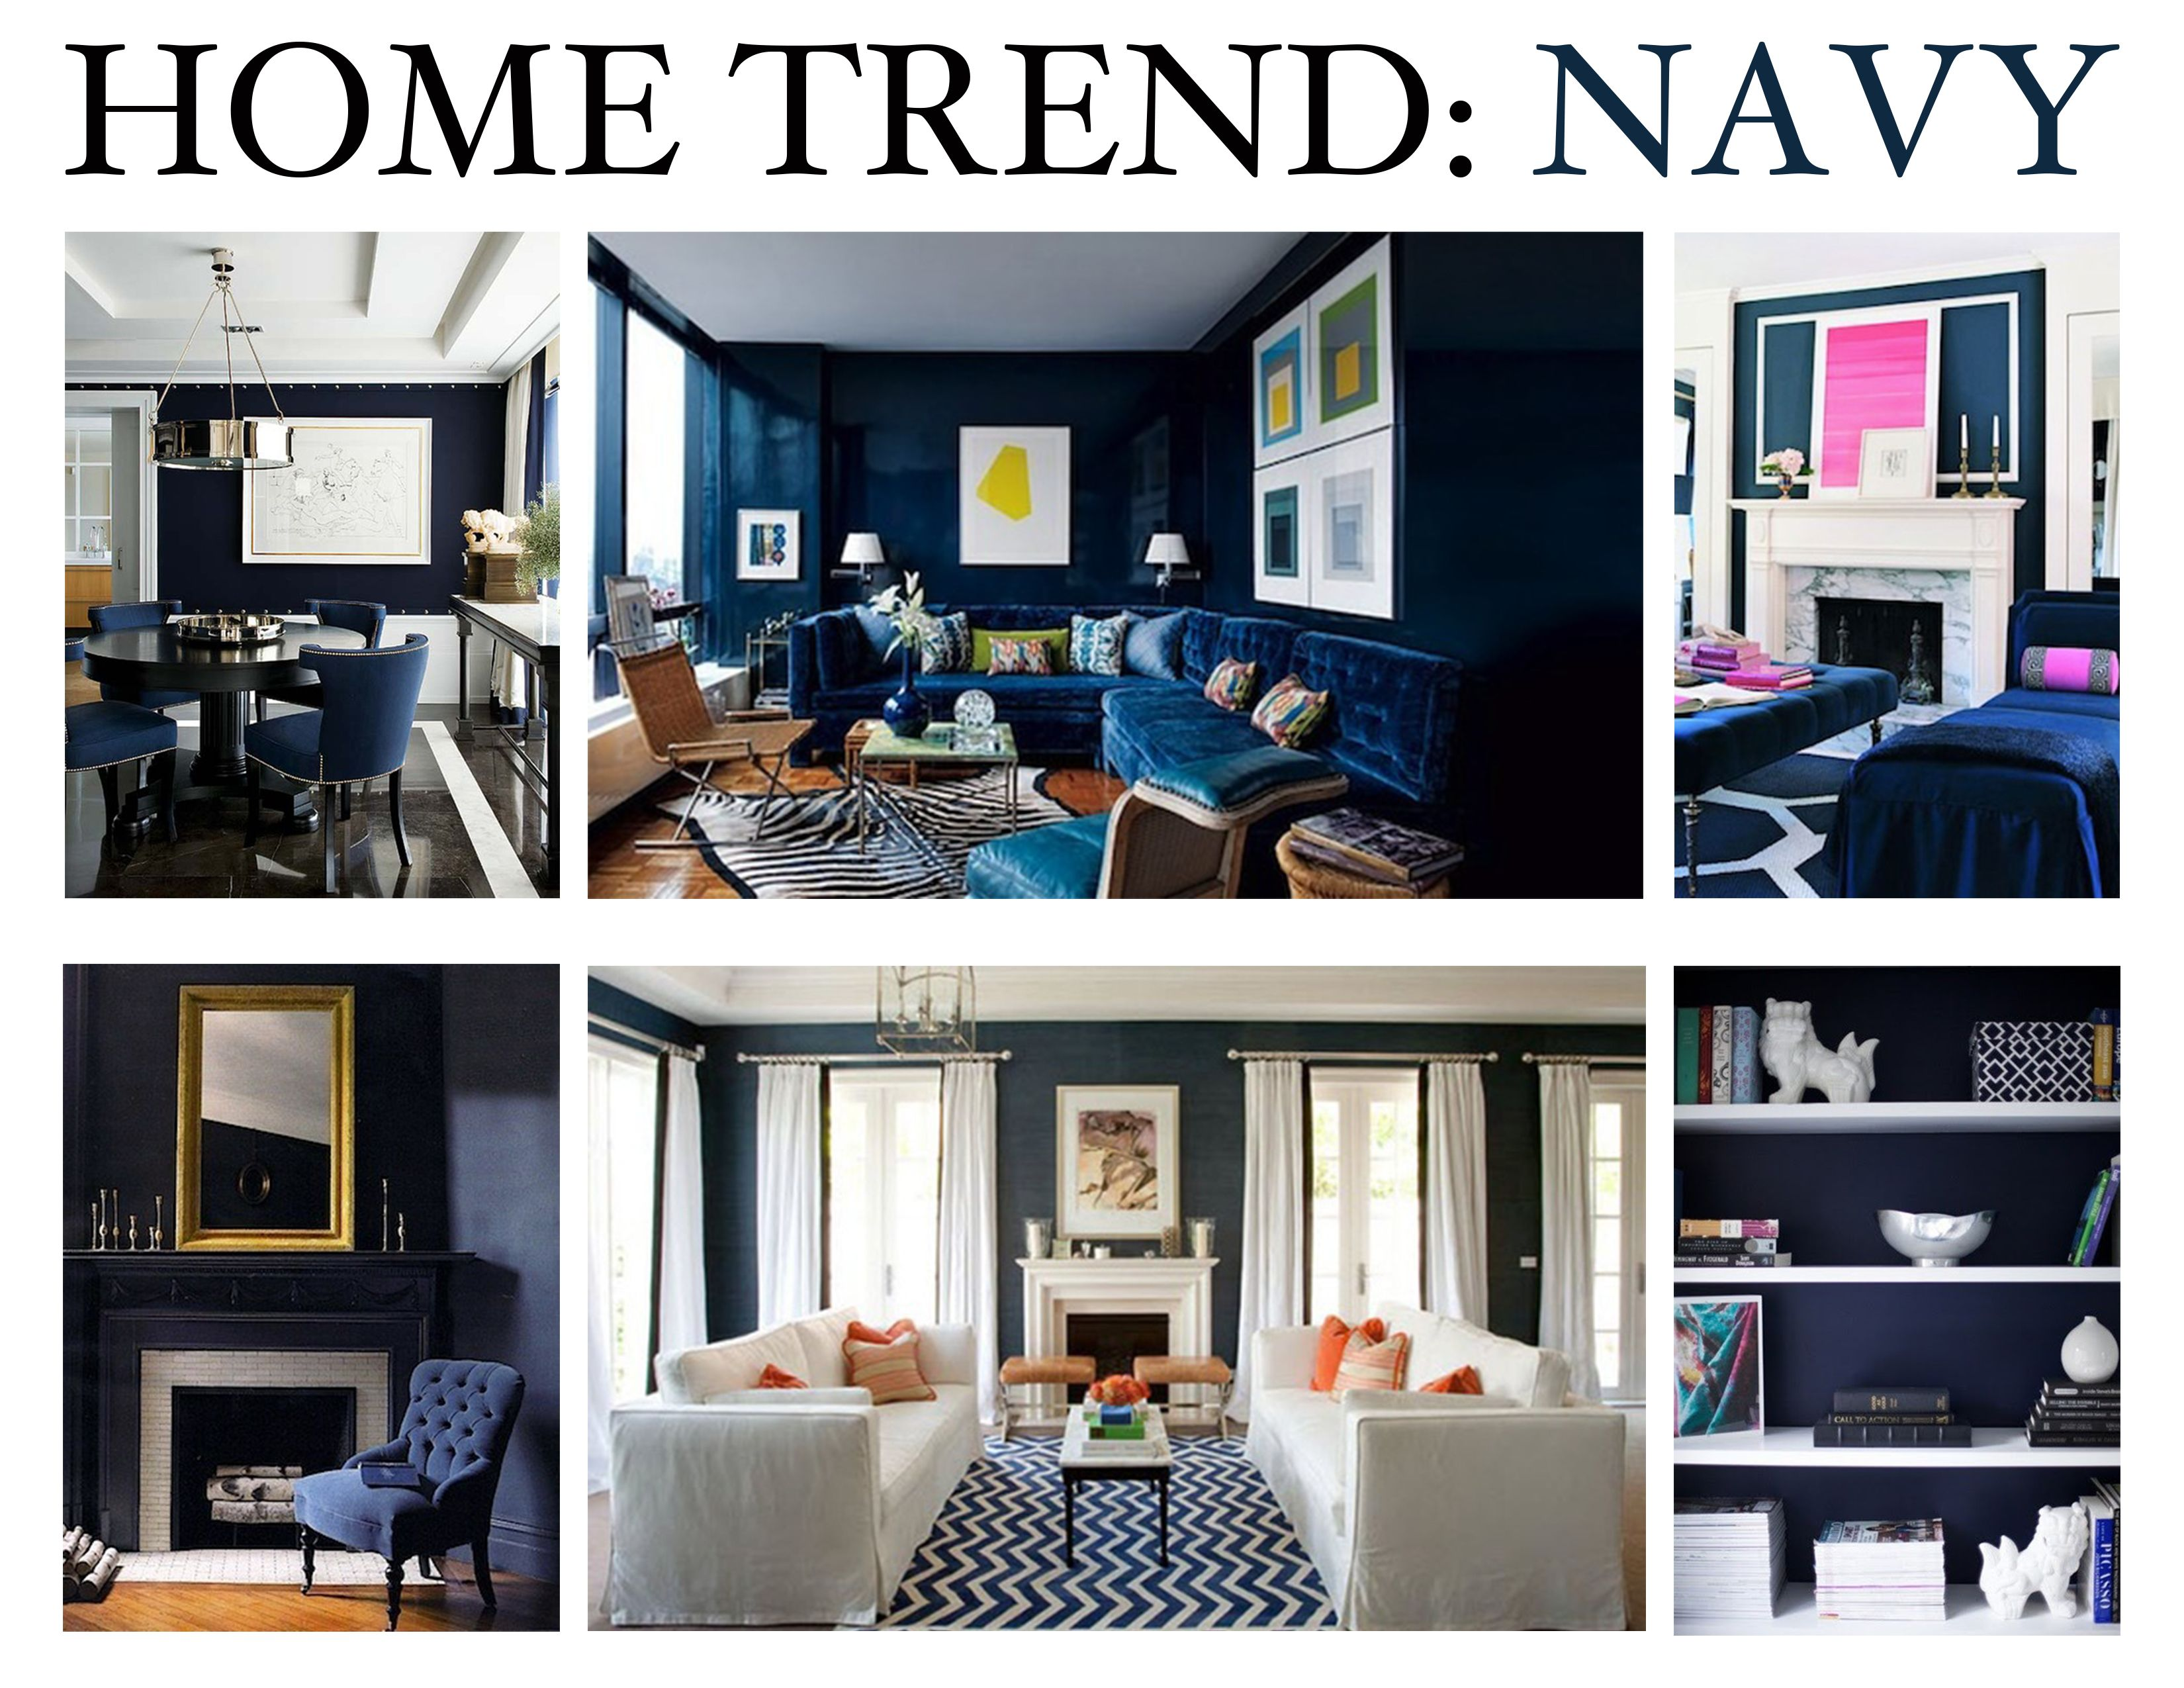 Ordinaire Home Trend : Navy Featuring #benjaminmoore Bold Blue 2064 10